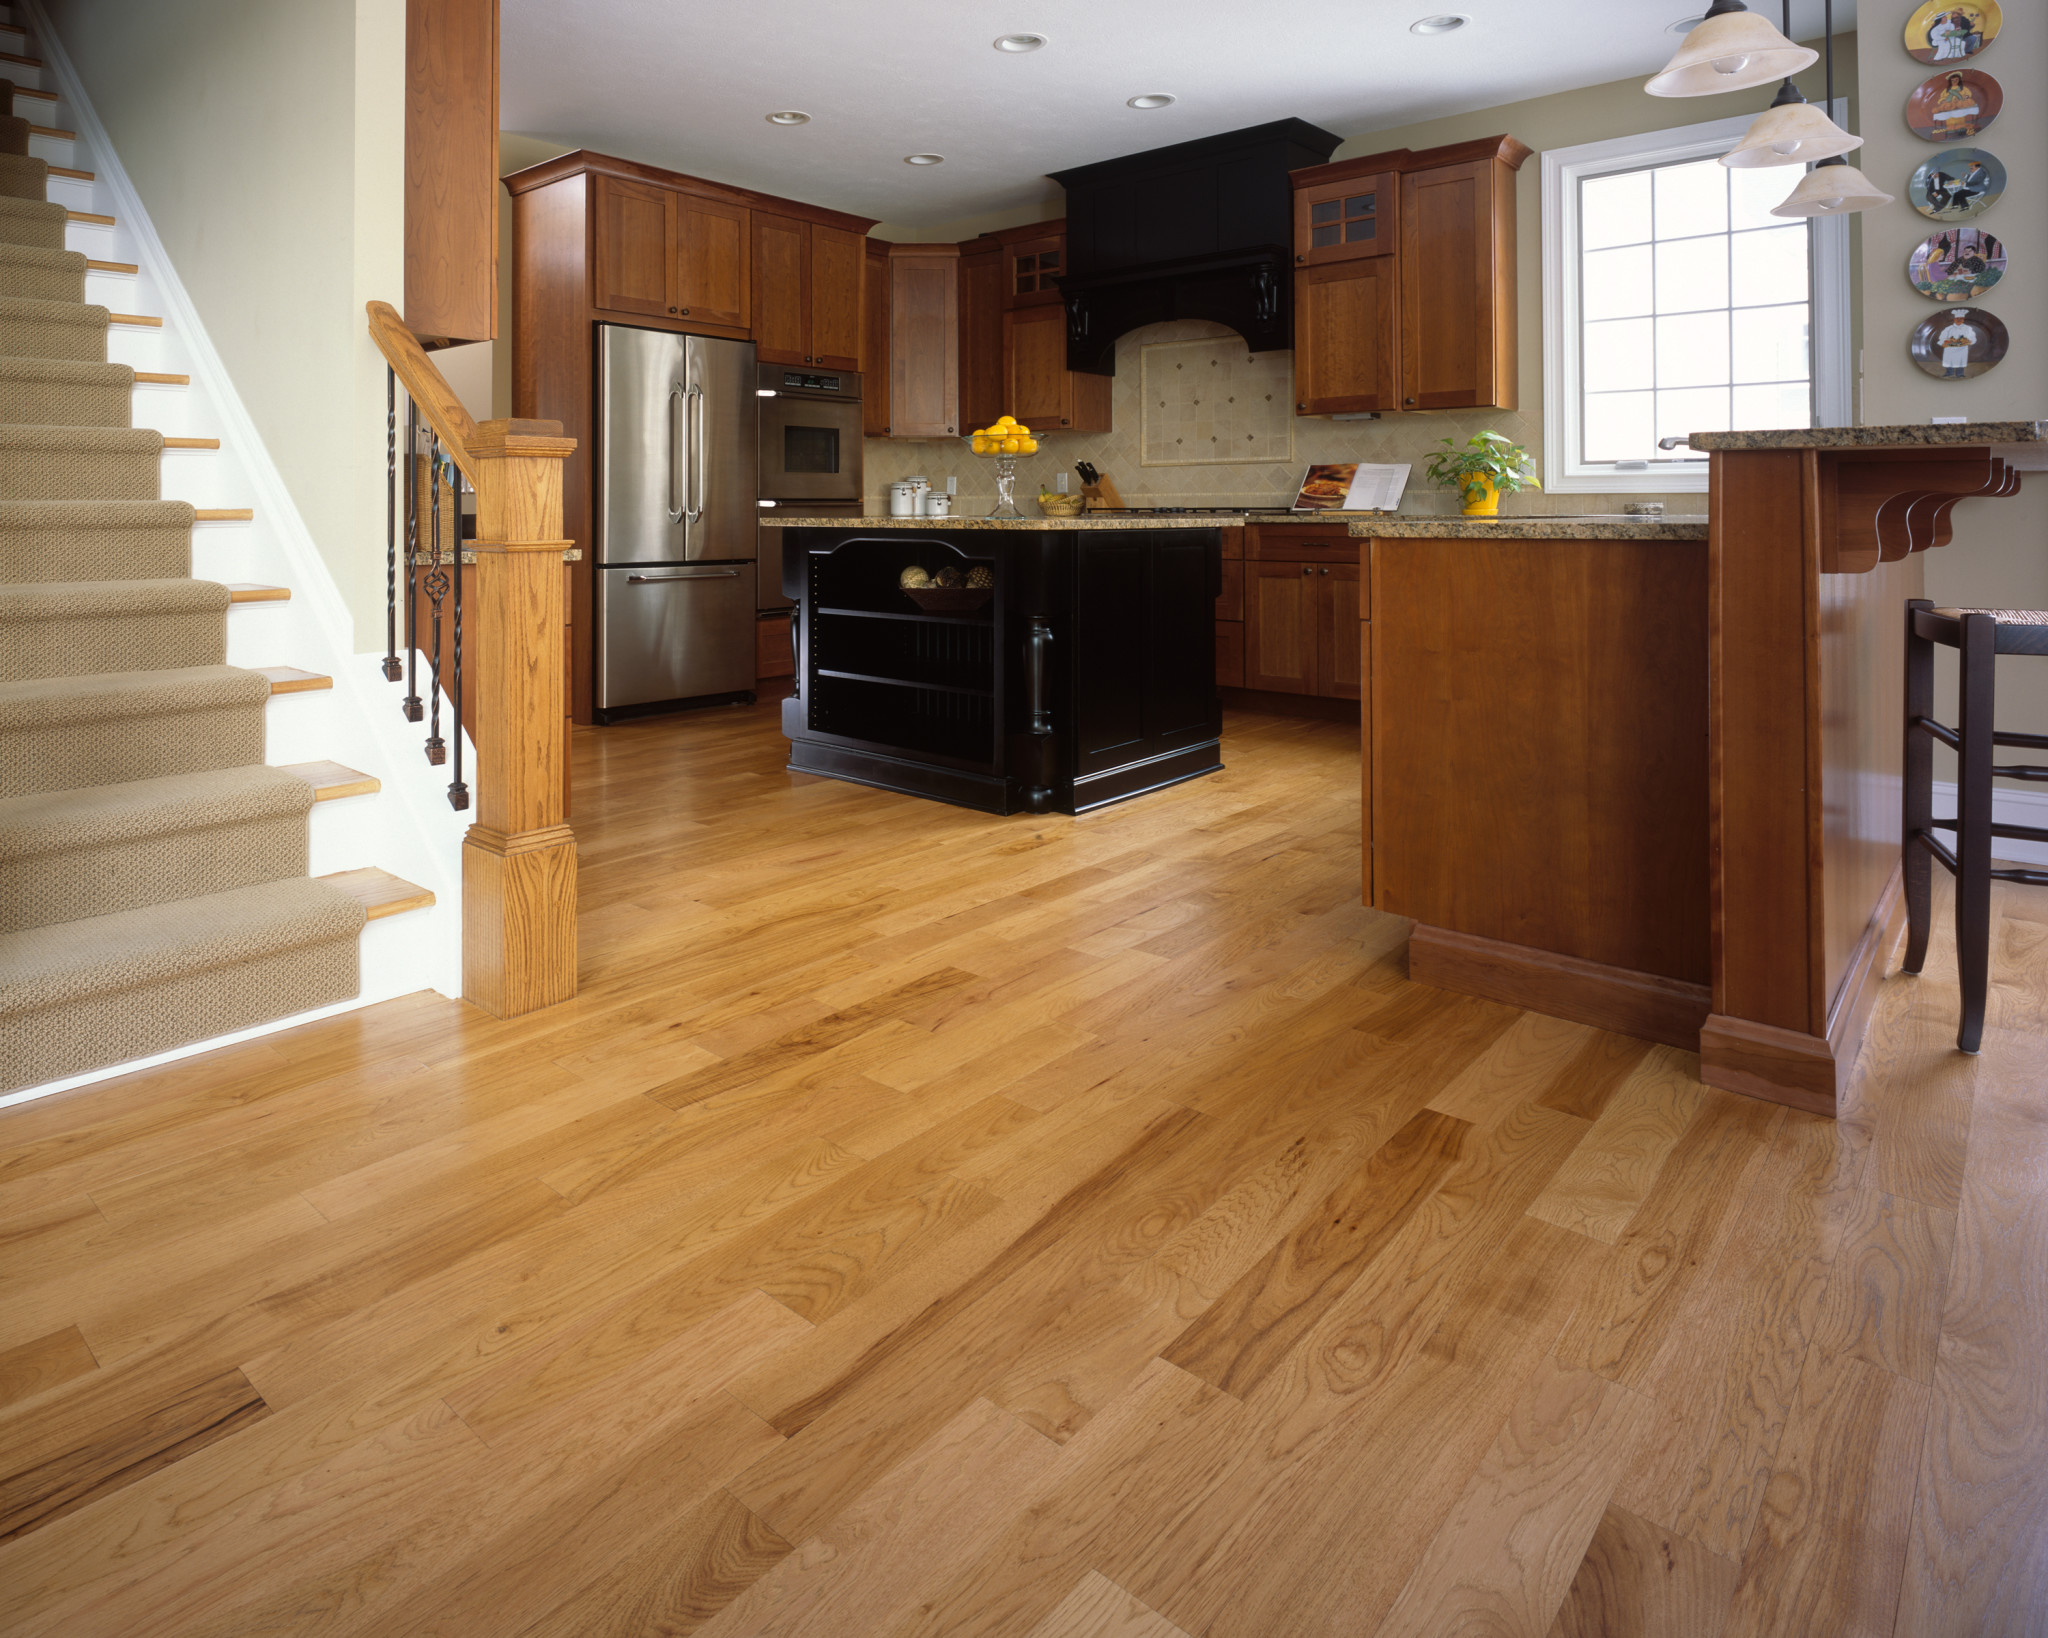 Wood Floors For Kitchens Wood Floors Tile Linoleum Jmarvinhandyman